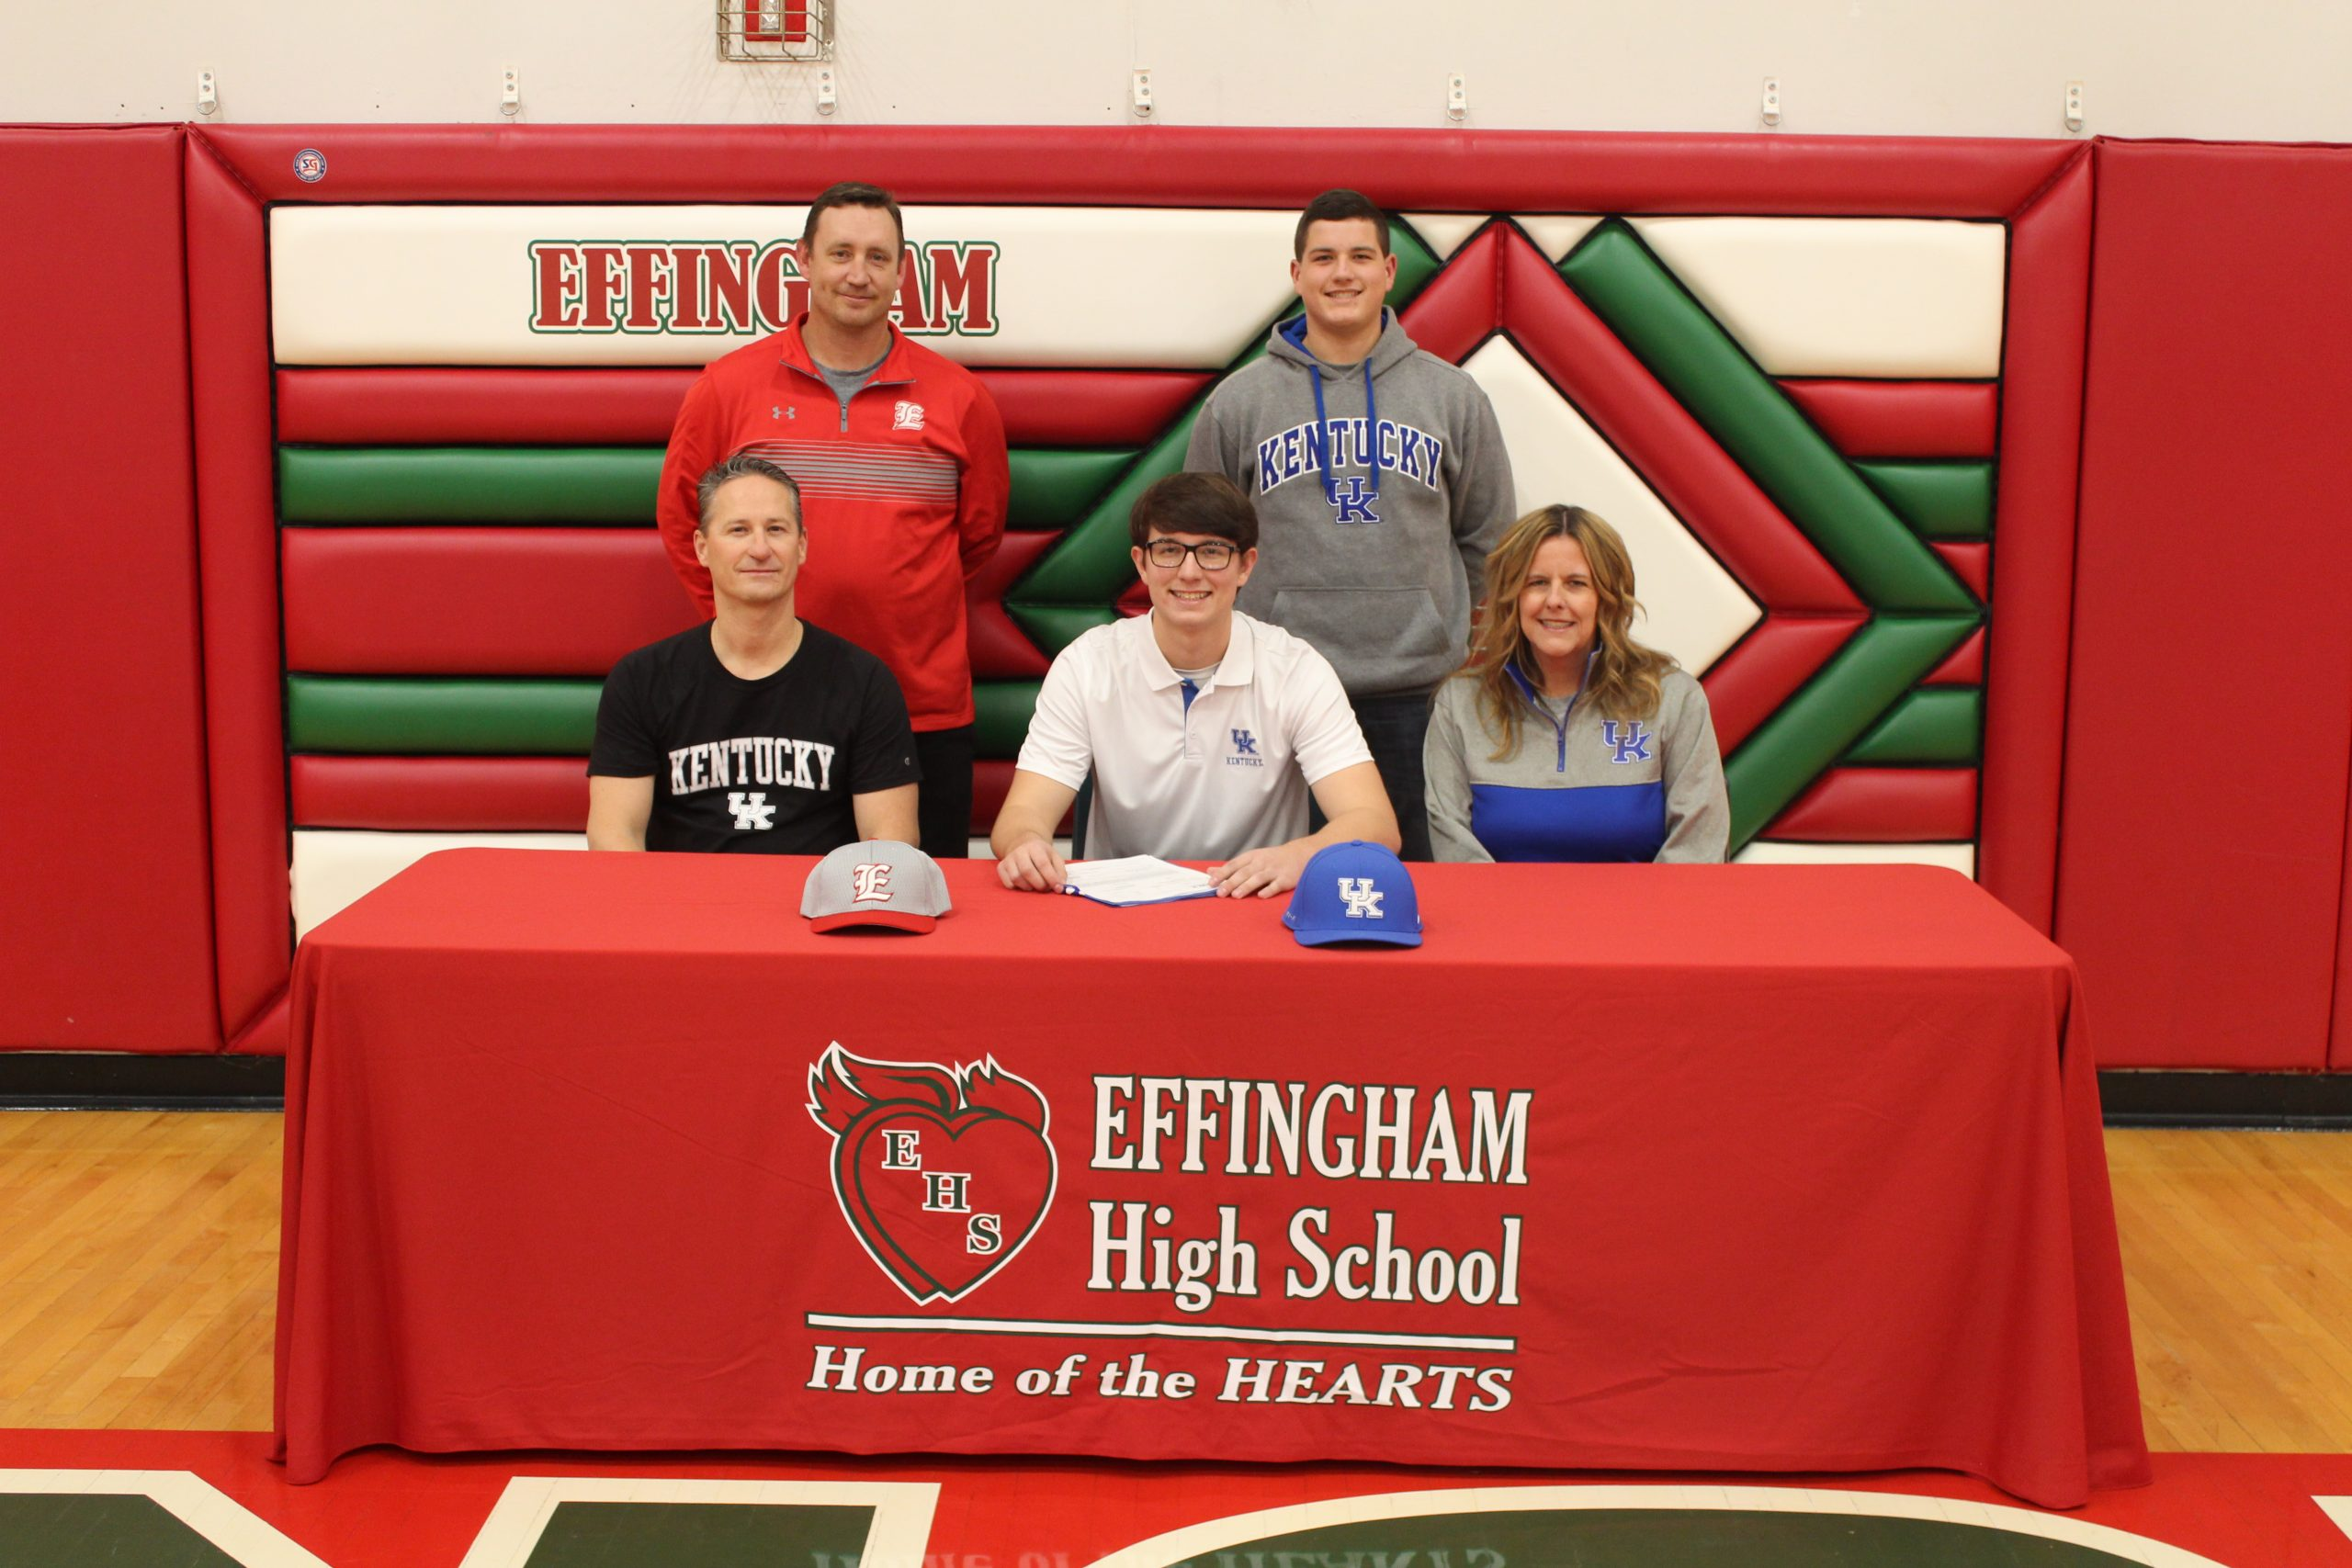 Effingham High School's Zach Lee Signs Letter of Intent to Play Baseball at Kentucky